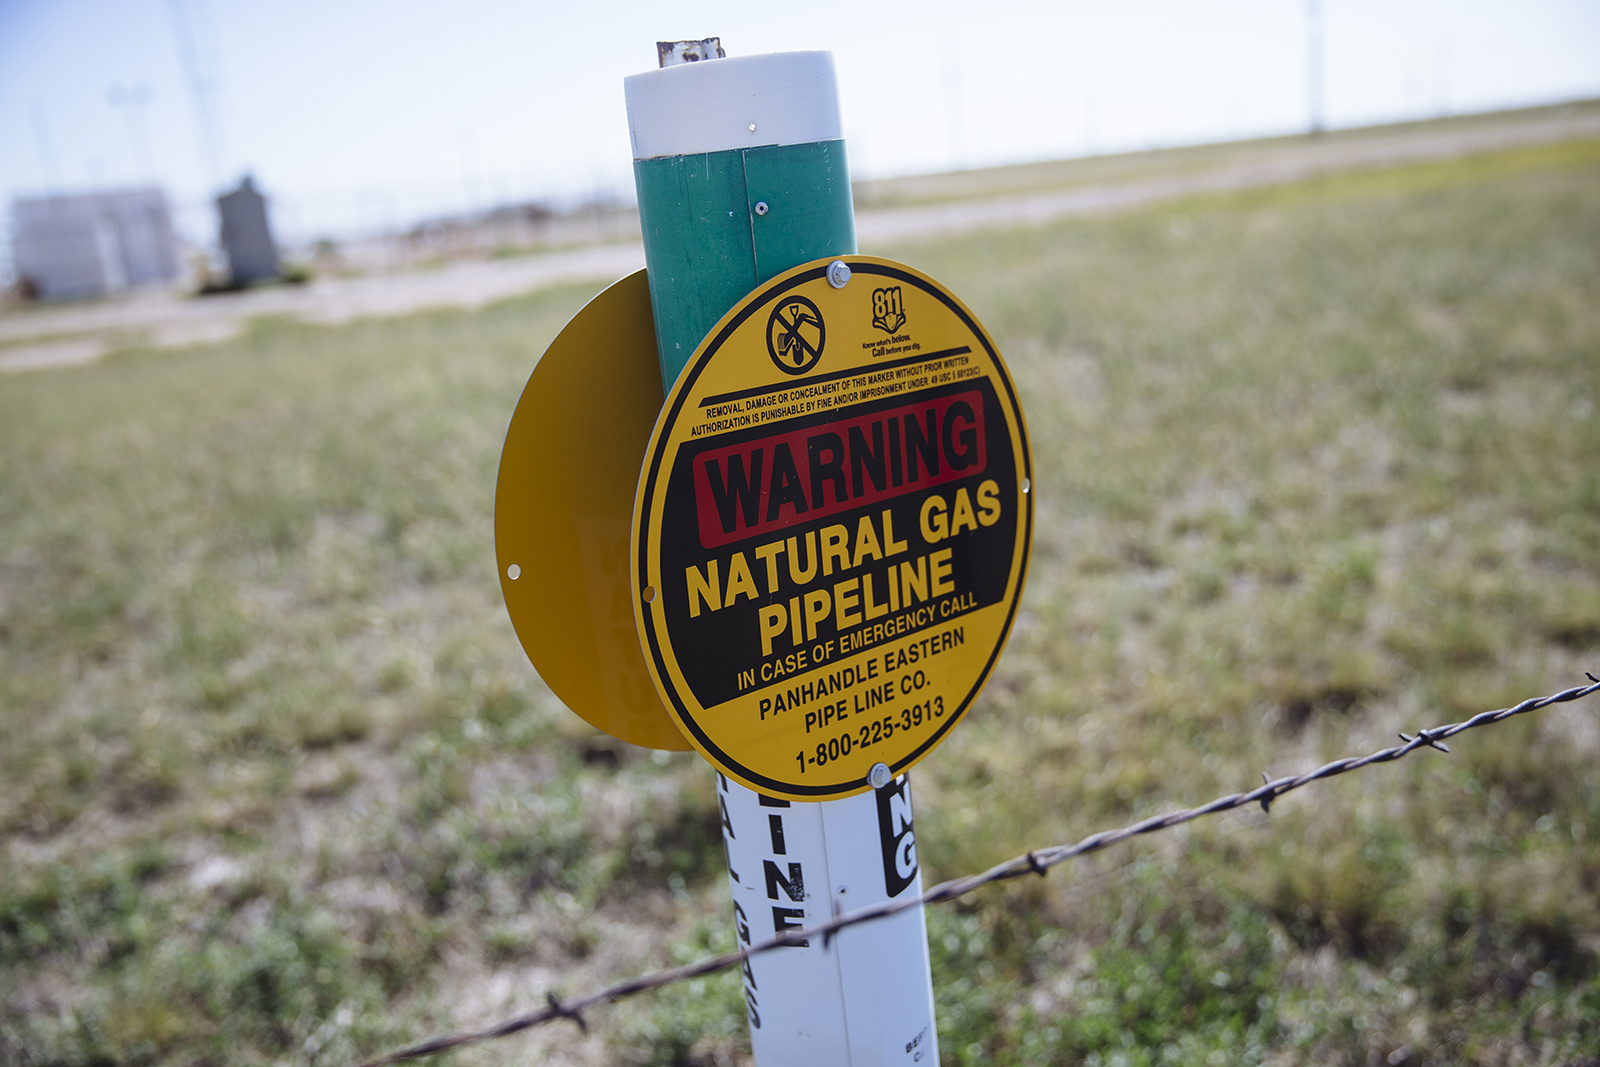 A warning sign for an underground natural gas pipeline stands near Sunray, Texas, U.S., on Saturday, Sept. 26, 2020.